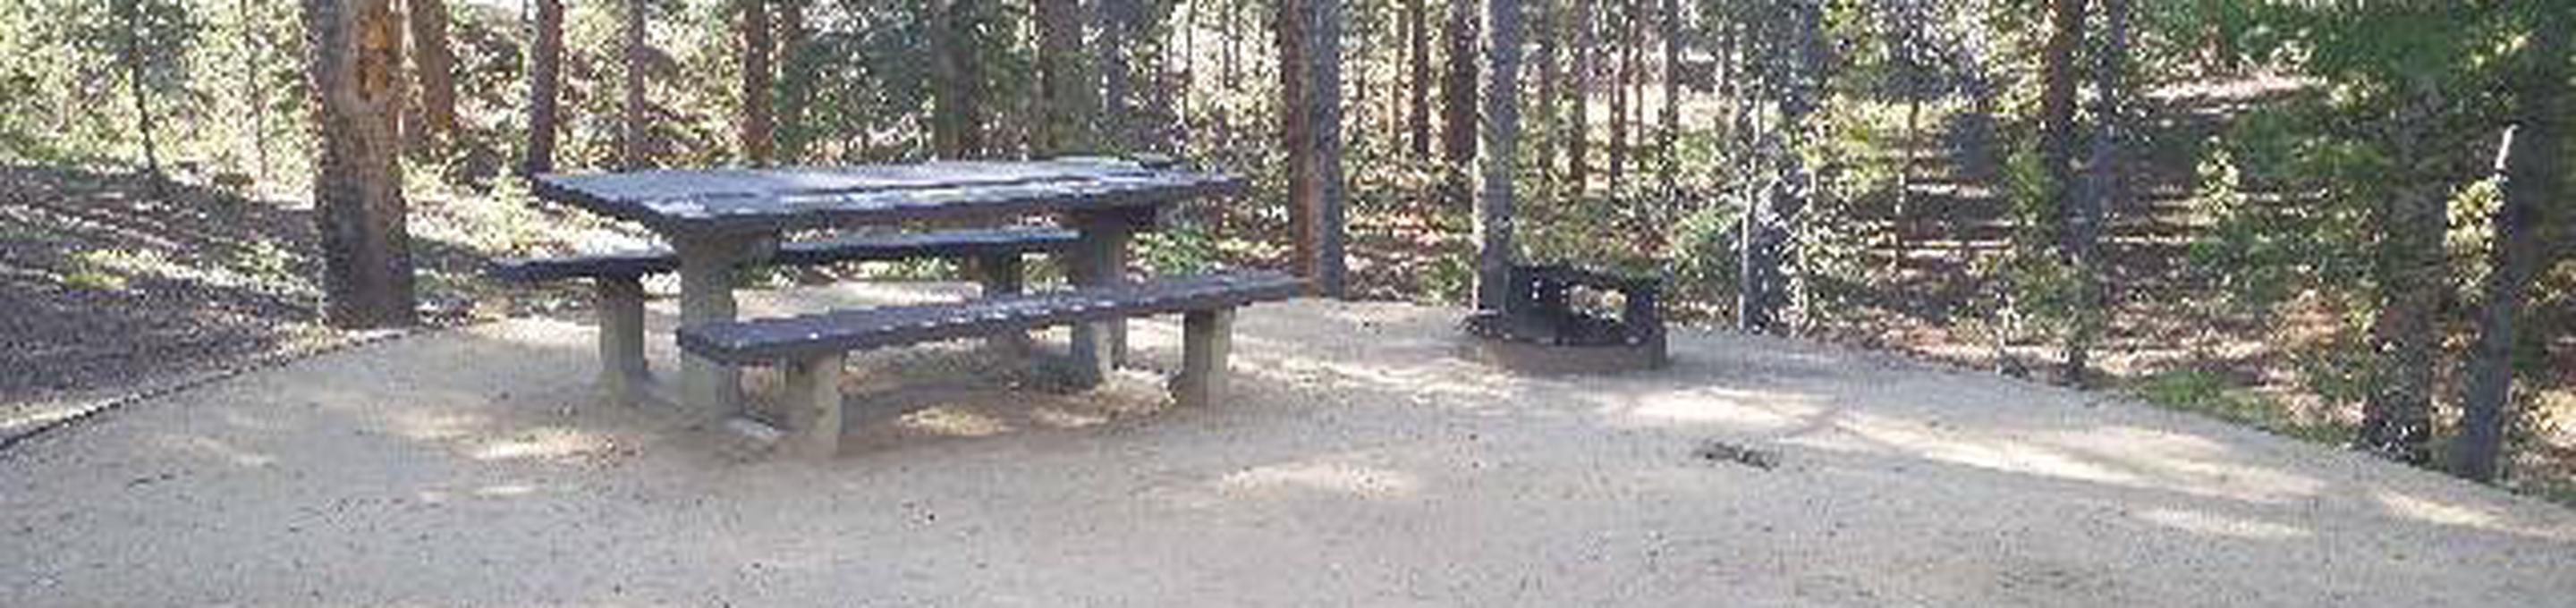 Molly Brown Campground, site 44